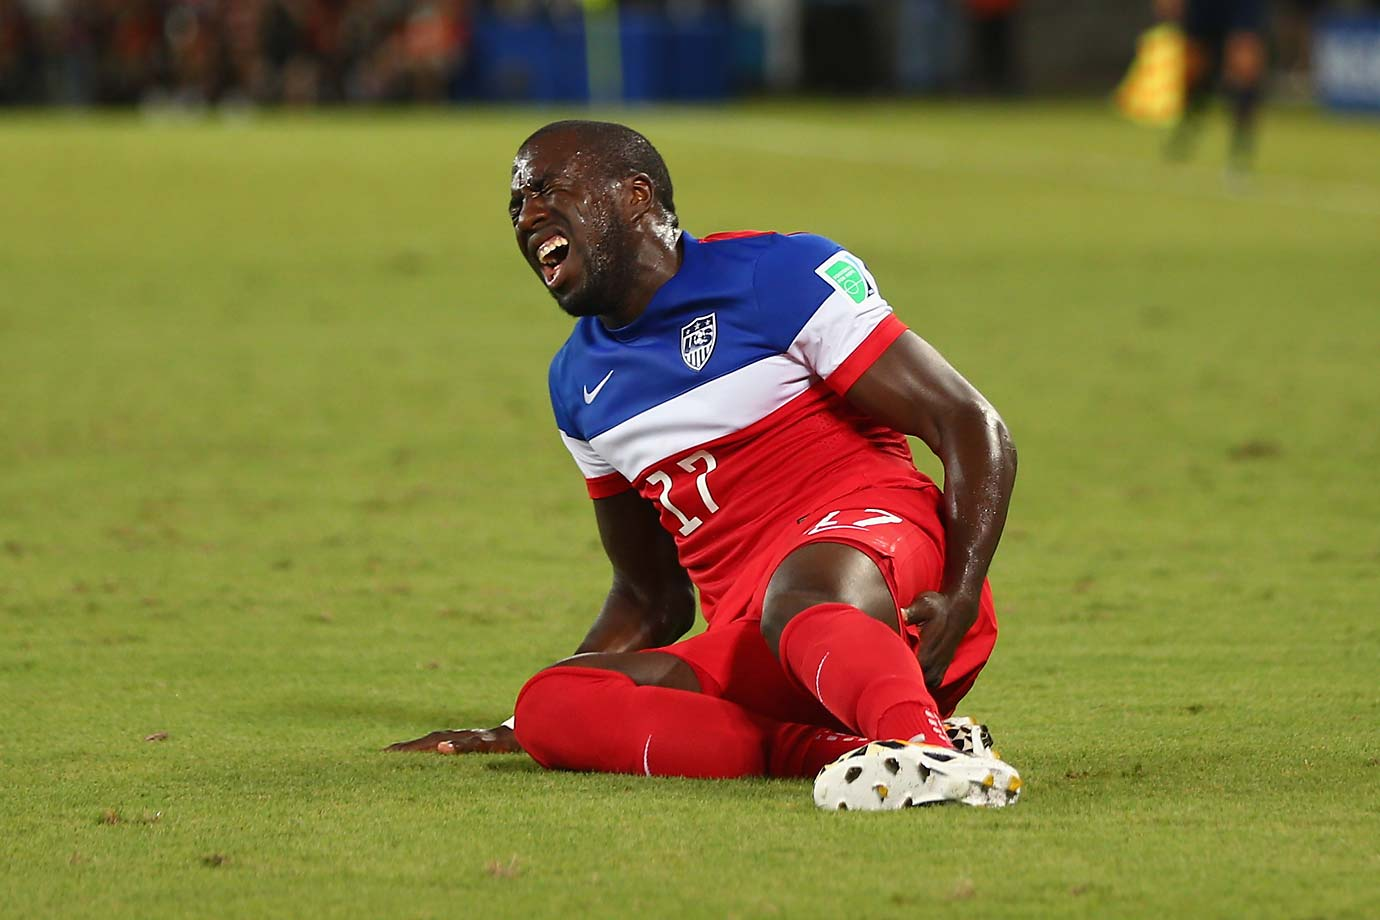 If he's unable to continue, the U.S. won't be able to replace him on the roster.